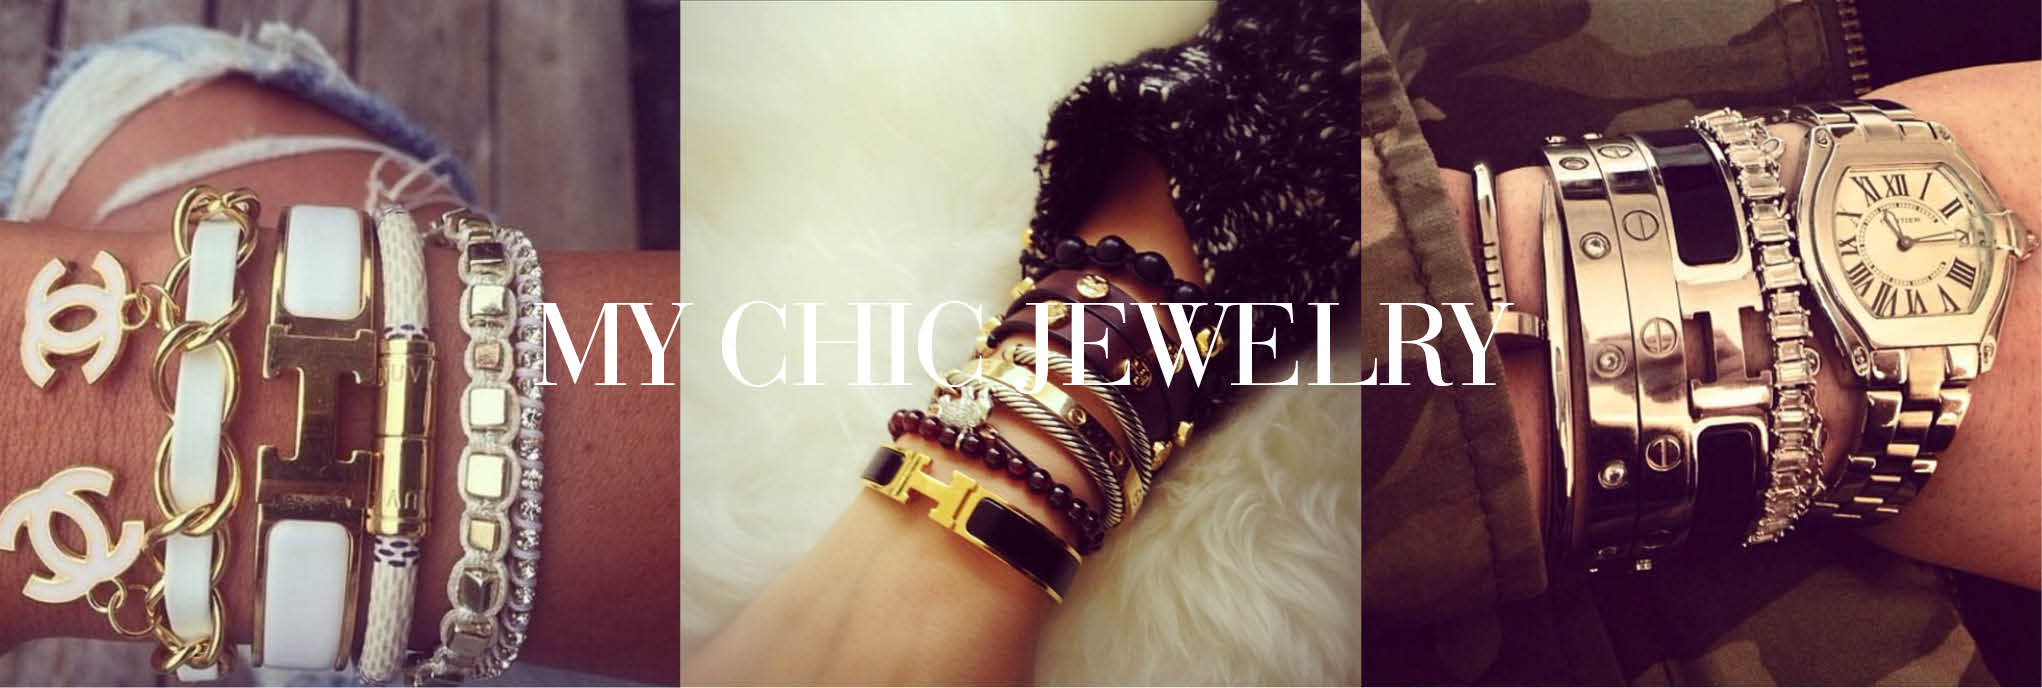 Pre-loved luxury designer jewels await you on The Chic Selection